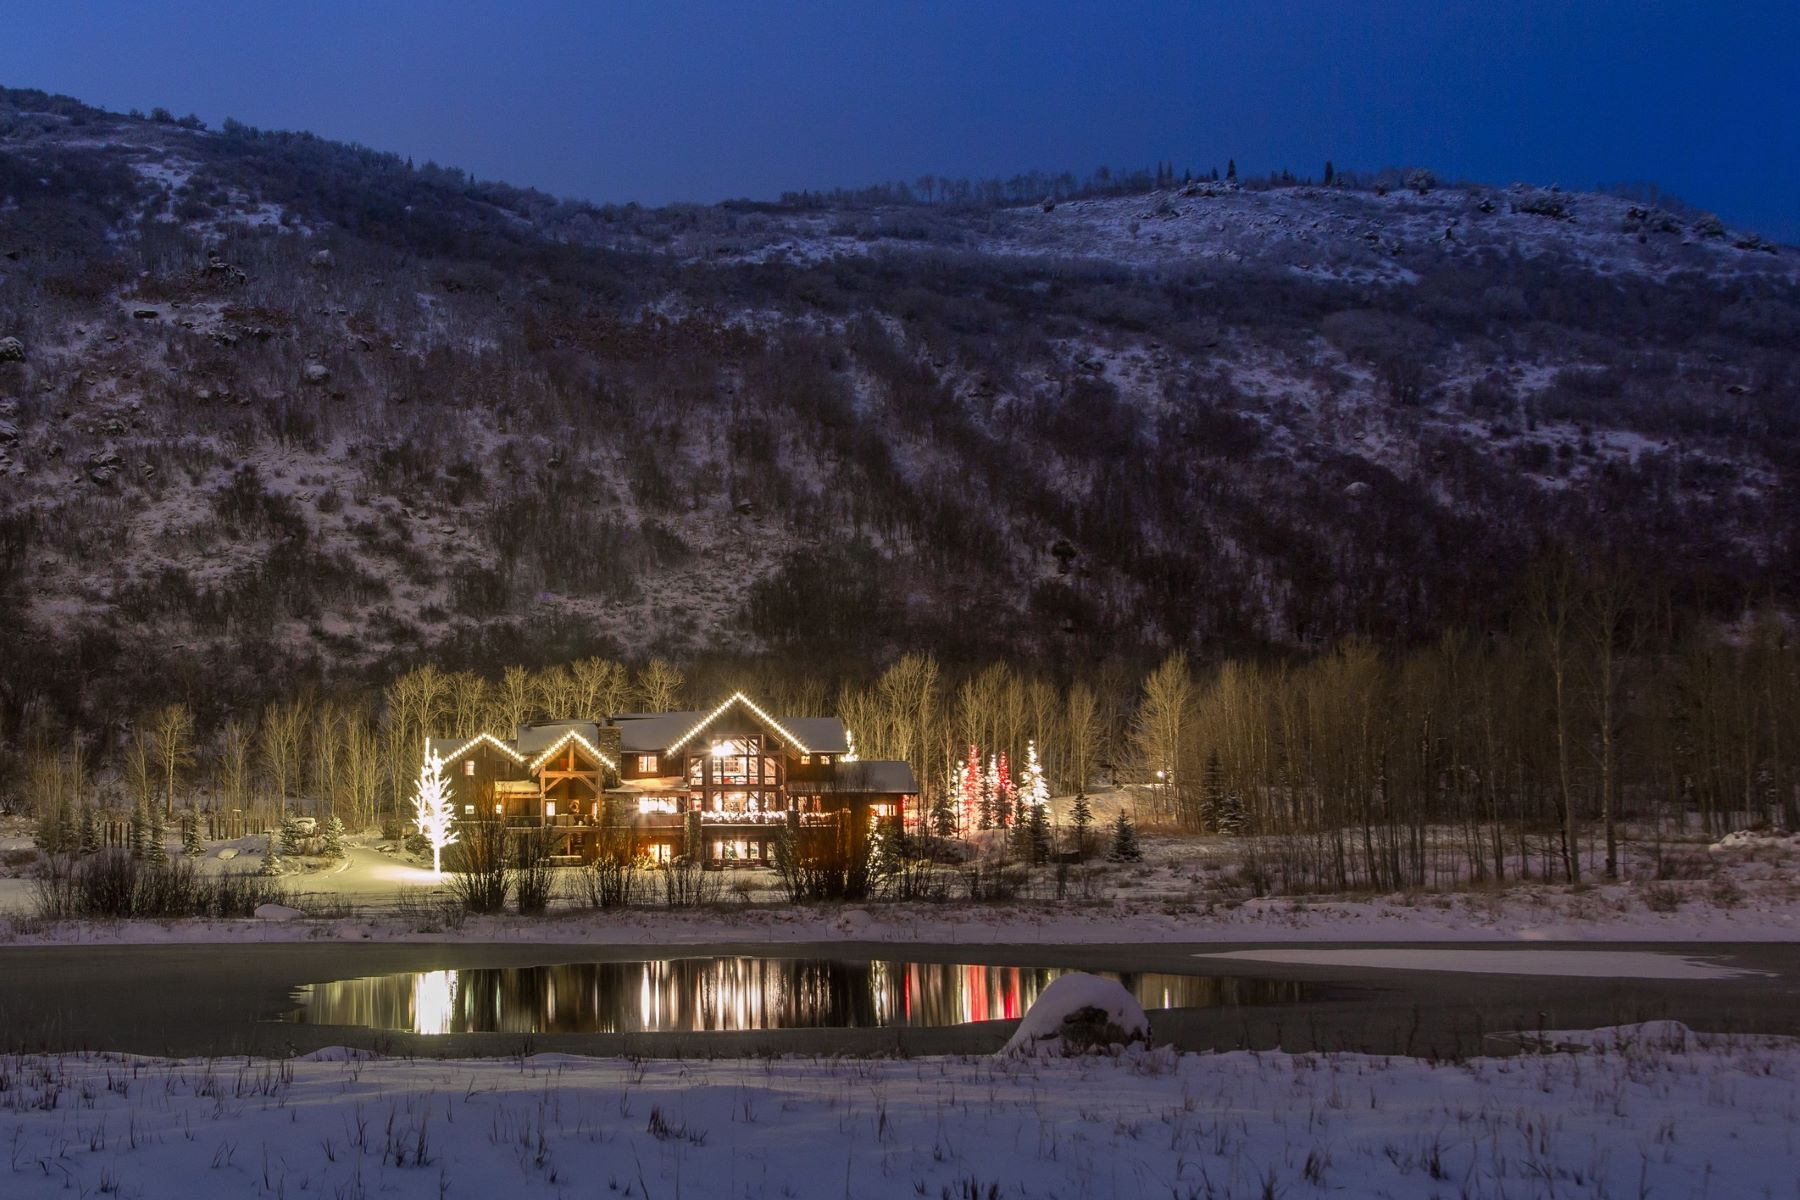 Single Family Home for Sale at Elkins Meadow Masterpiece 2890 Bucks Path Steamboat Springs, Colorado 80487 United States